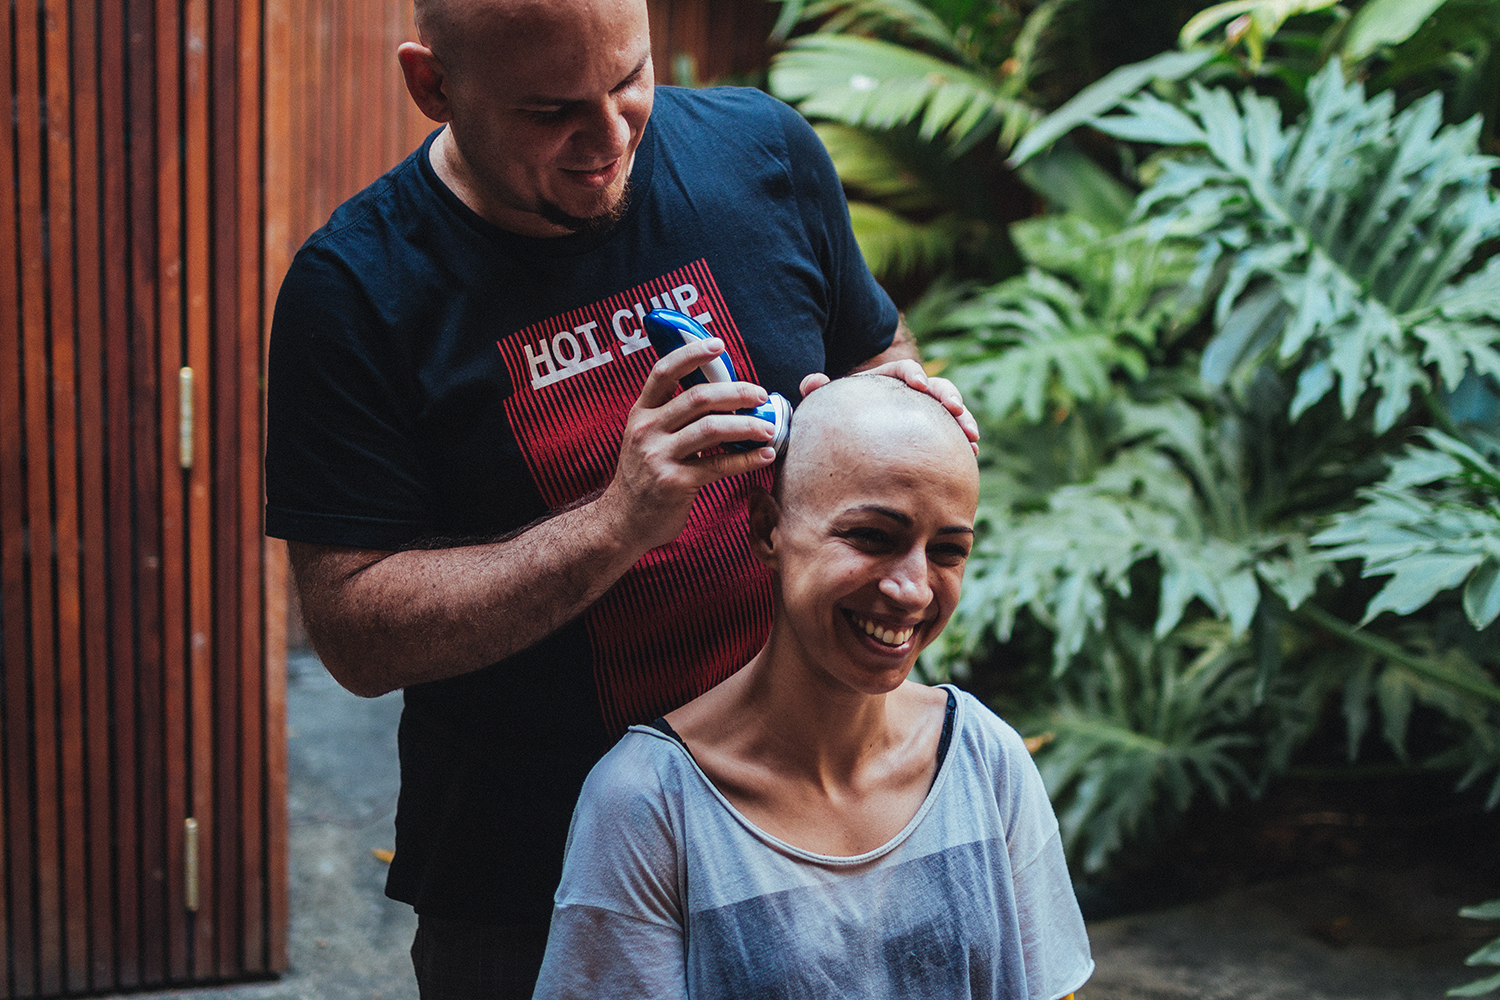 After having my hair cut really short, I had to shave my head. The short hair kept falling and falling, creating holes of empty space on my head. Ana Peres and Mauricio, my friends, went to my house almost every week to shave it.